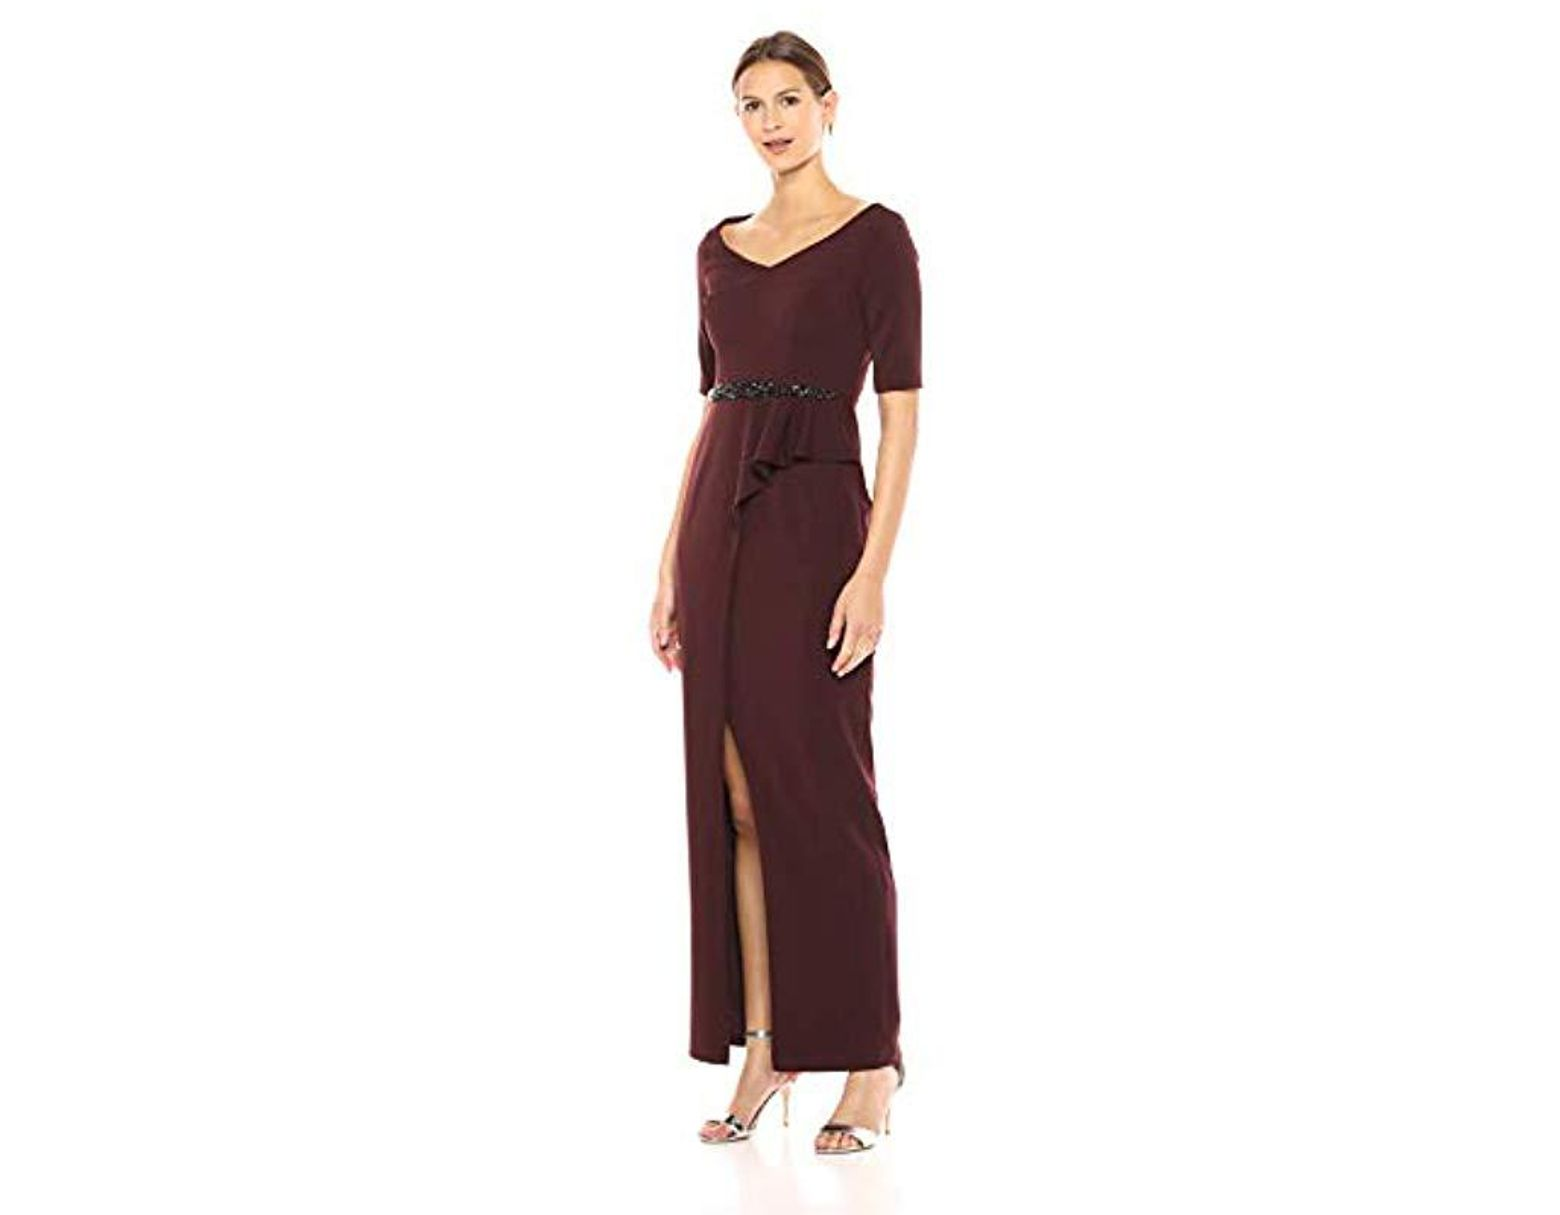 e75ab7e67e3 Adrianna Papell. Women s Purple Elbow Sleeve Beaded Waistline Long Stretch  Ottoman Dress